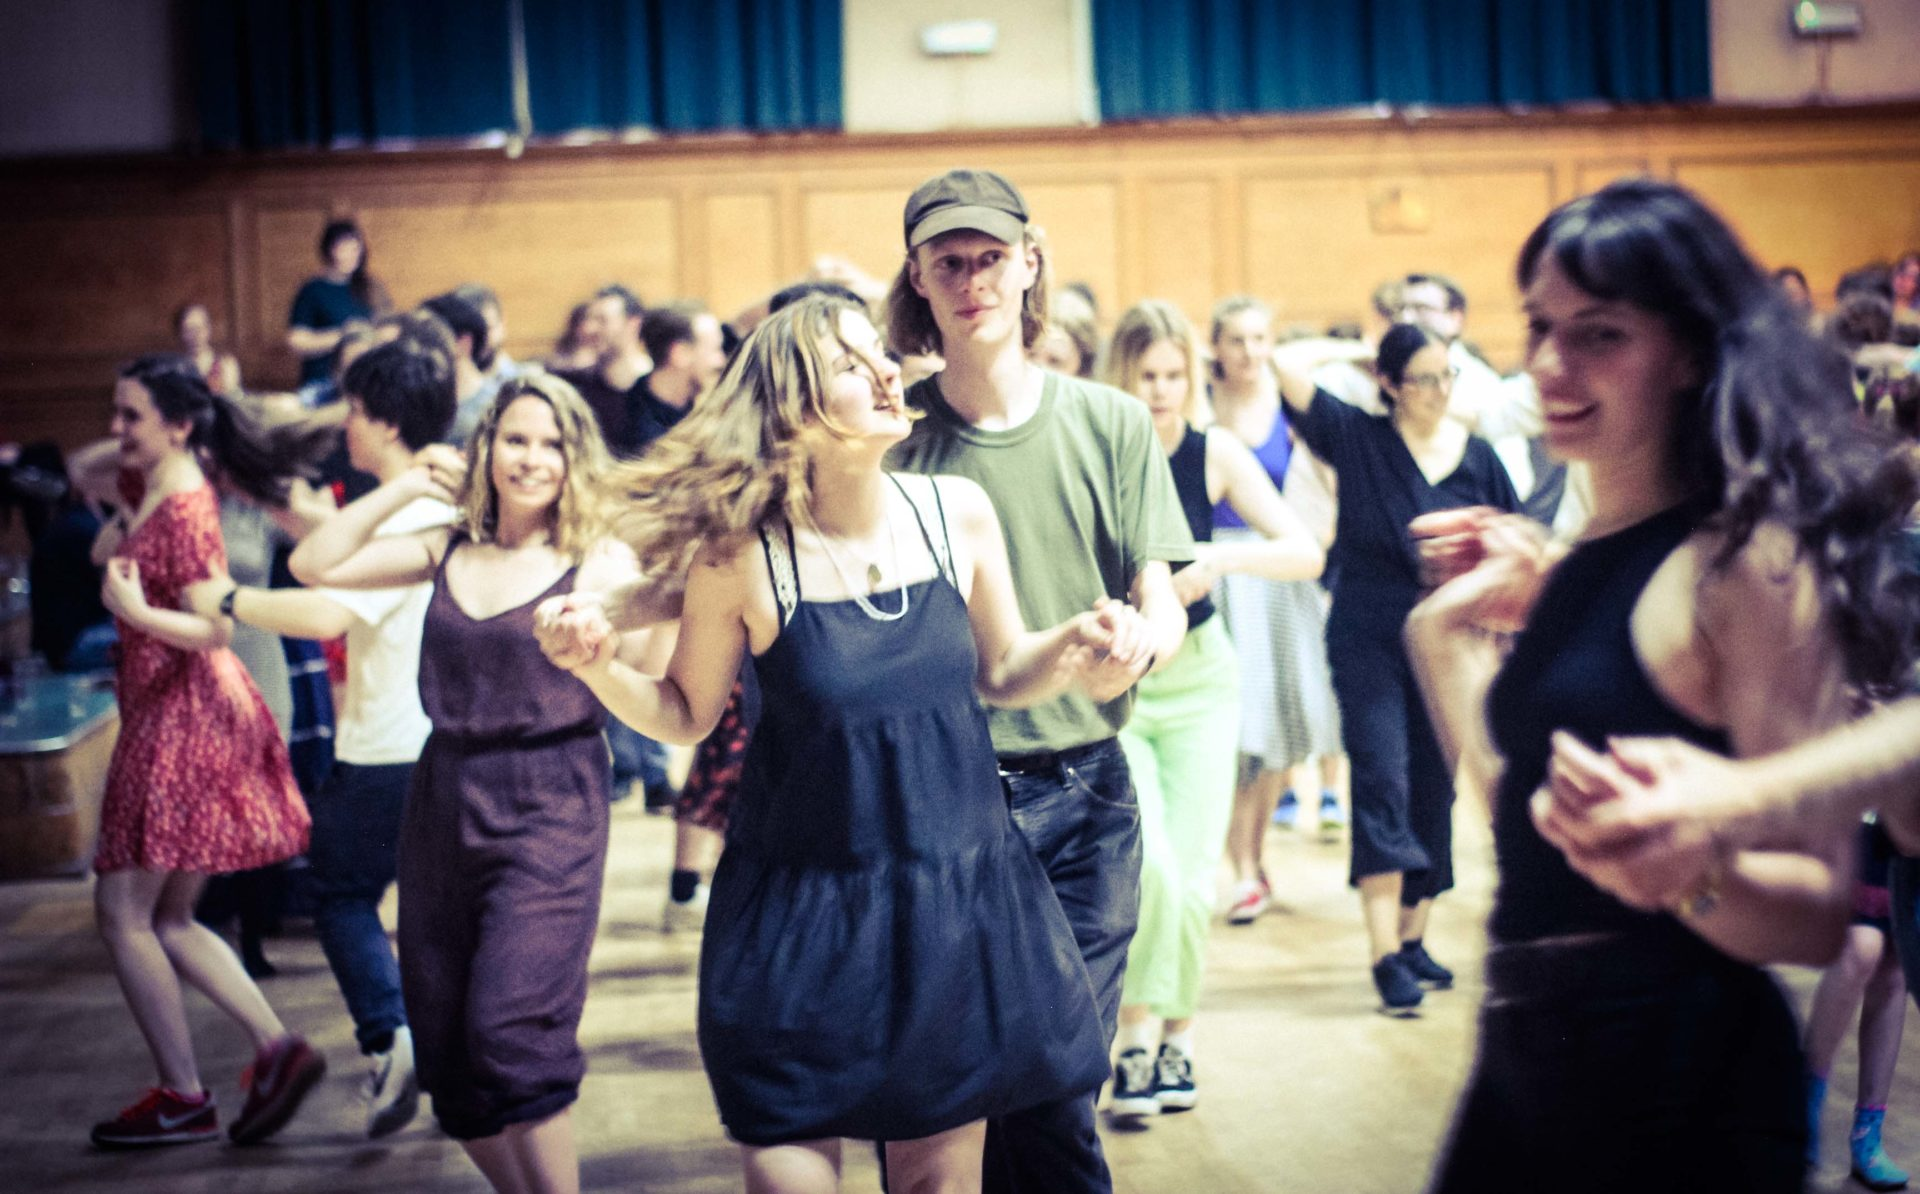 People having fun at the Ceilidh Club